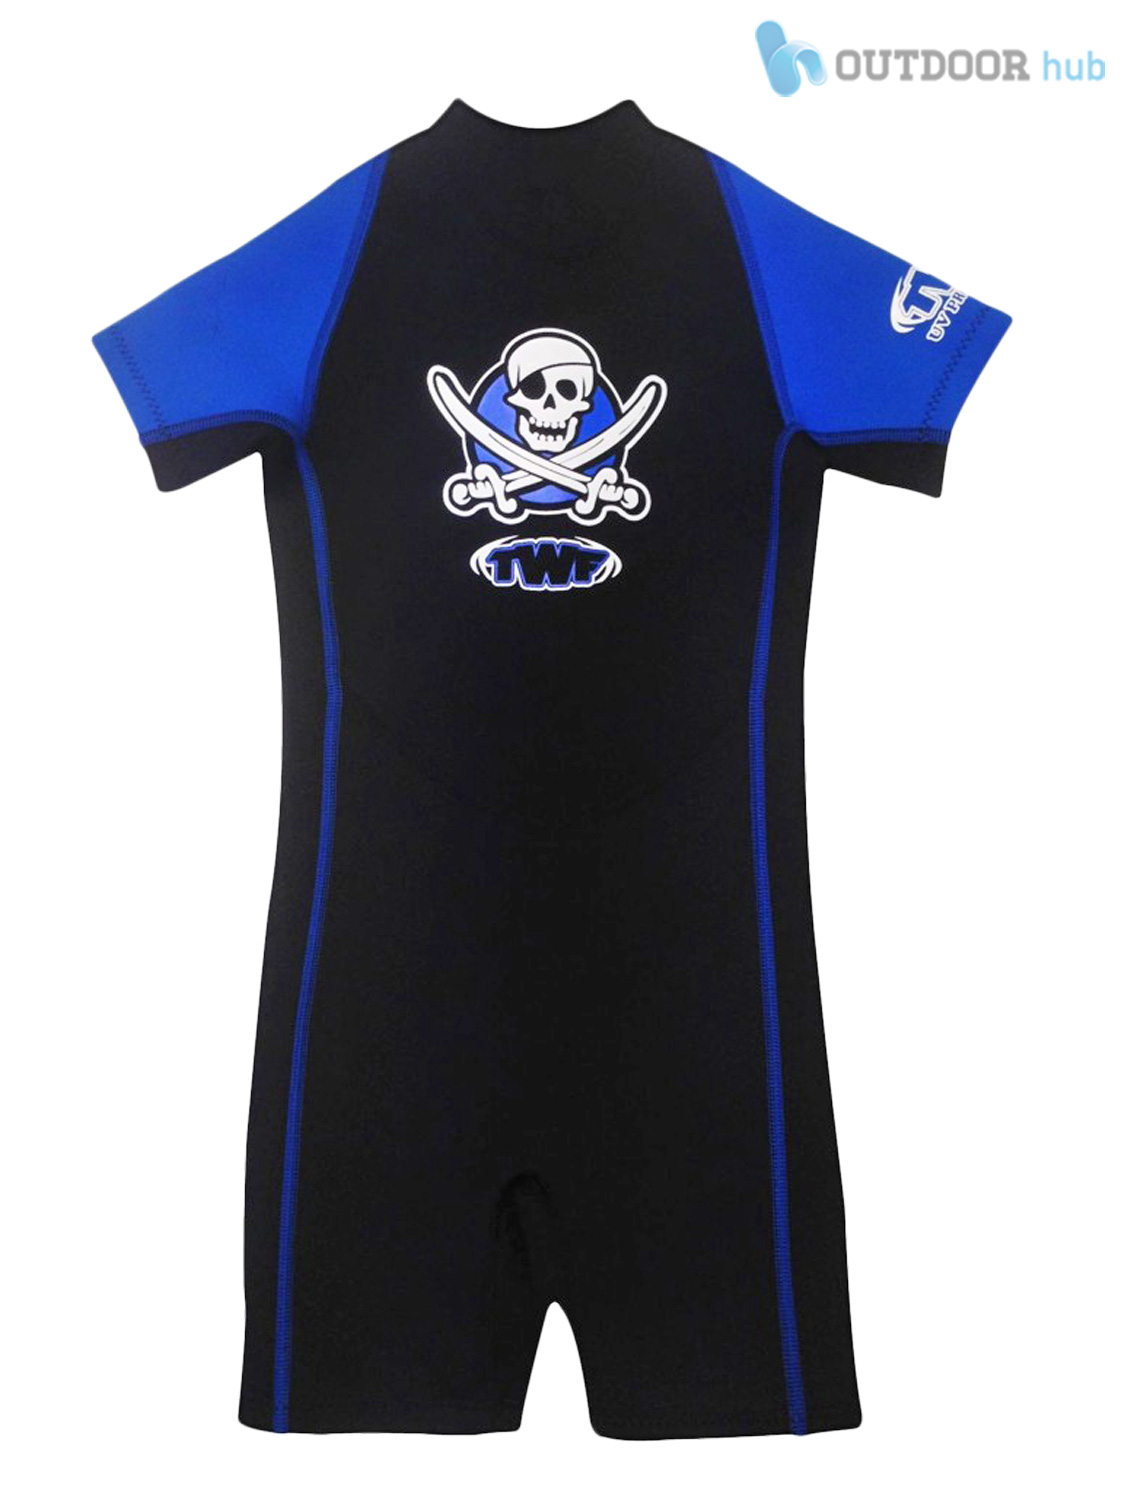 TWF-2mm-Kids-Shortie-Wetsuit-Childs-Shorty-Boys-Girls-Beach-Swim-Baby-Toddler thumbnail 5